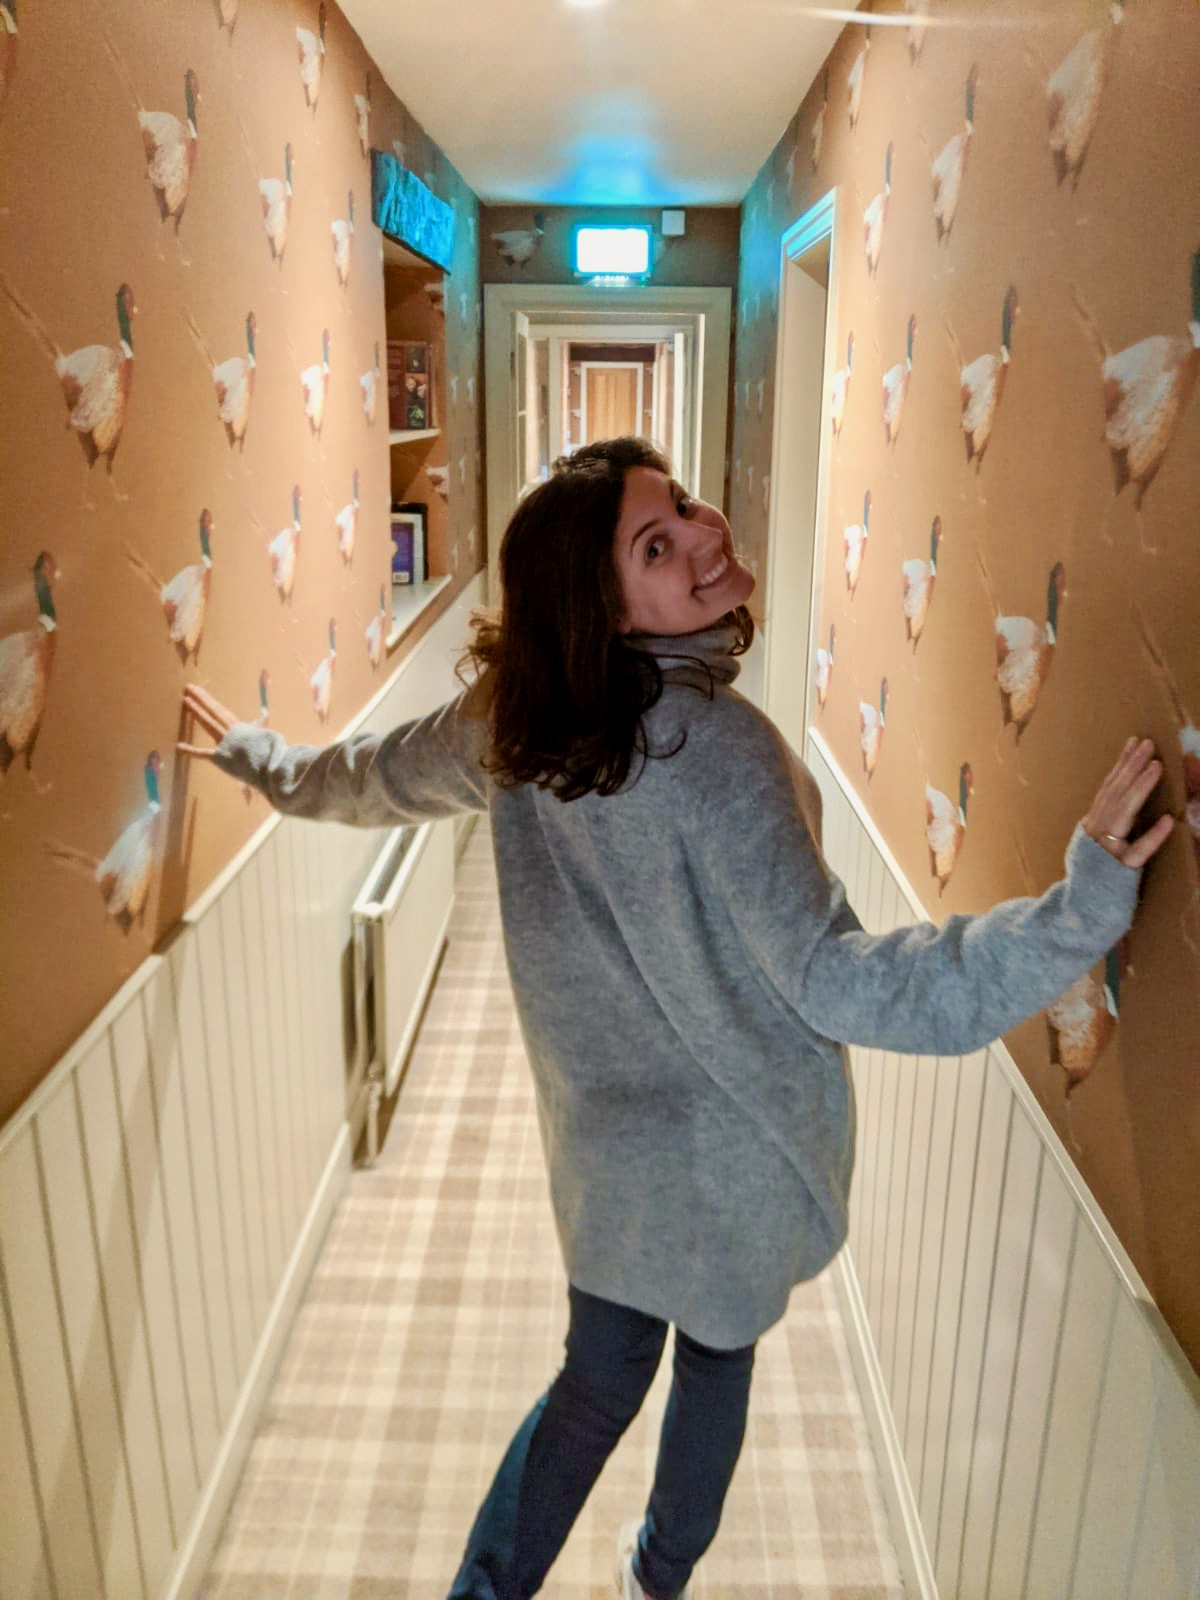 Nell posing in the corridor with pheasant wallpaper. She's walking away from the camera but turning to smile back at it.